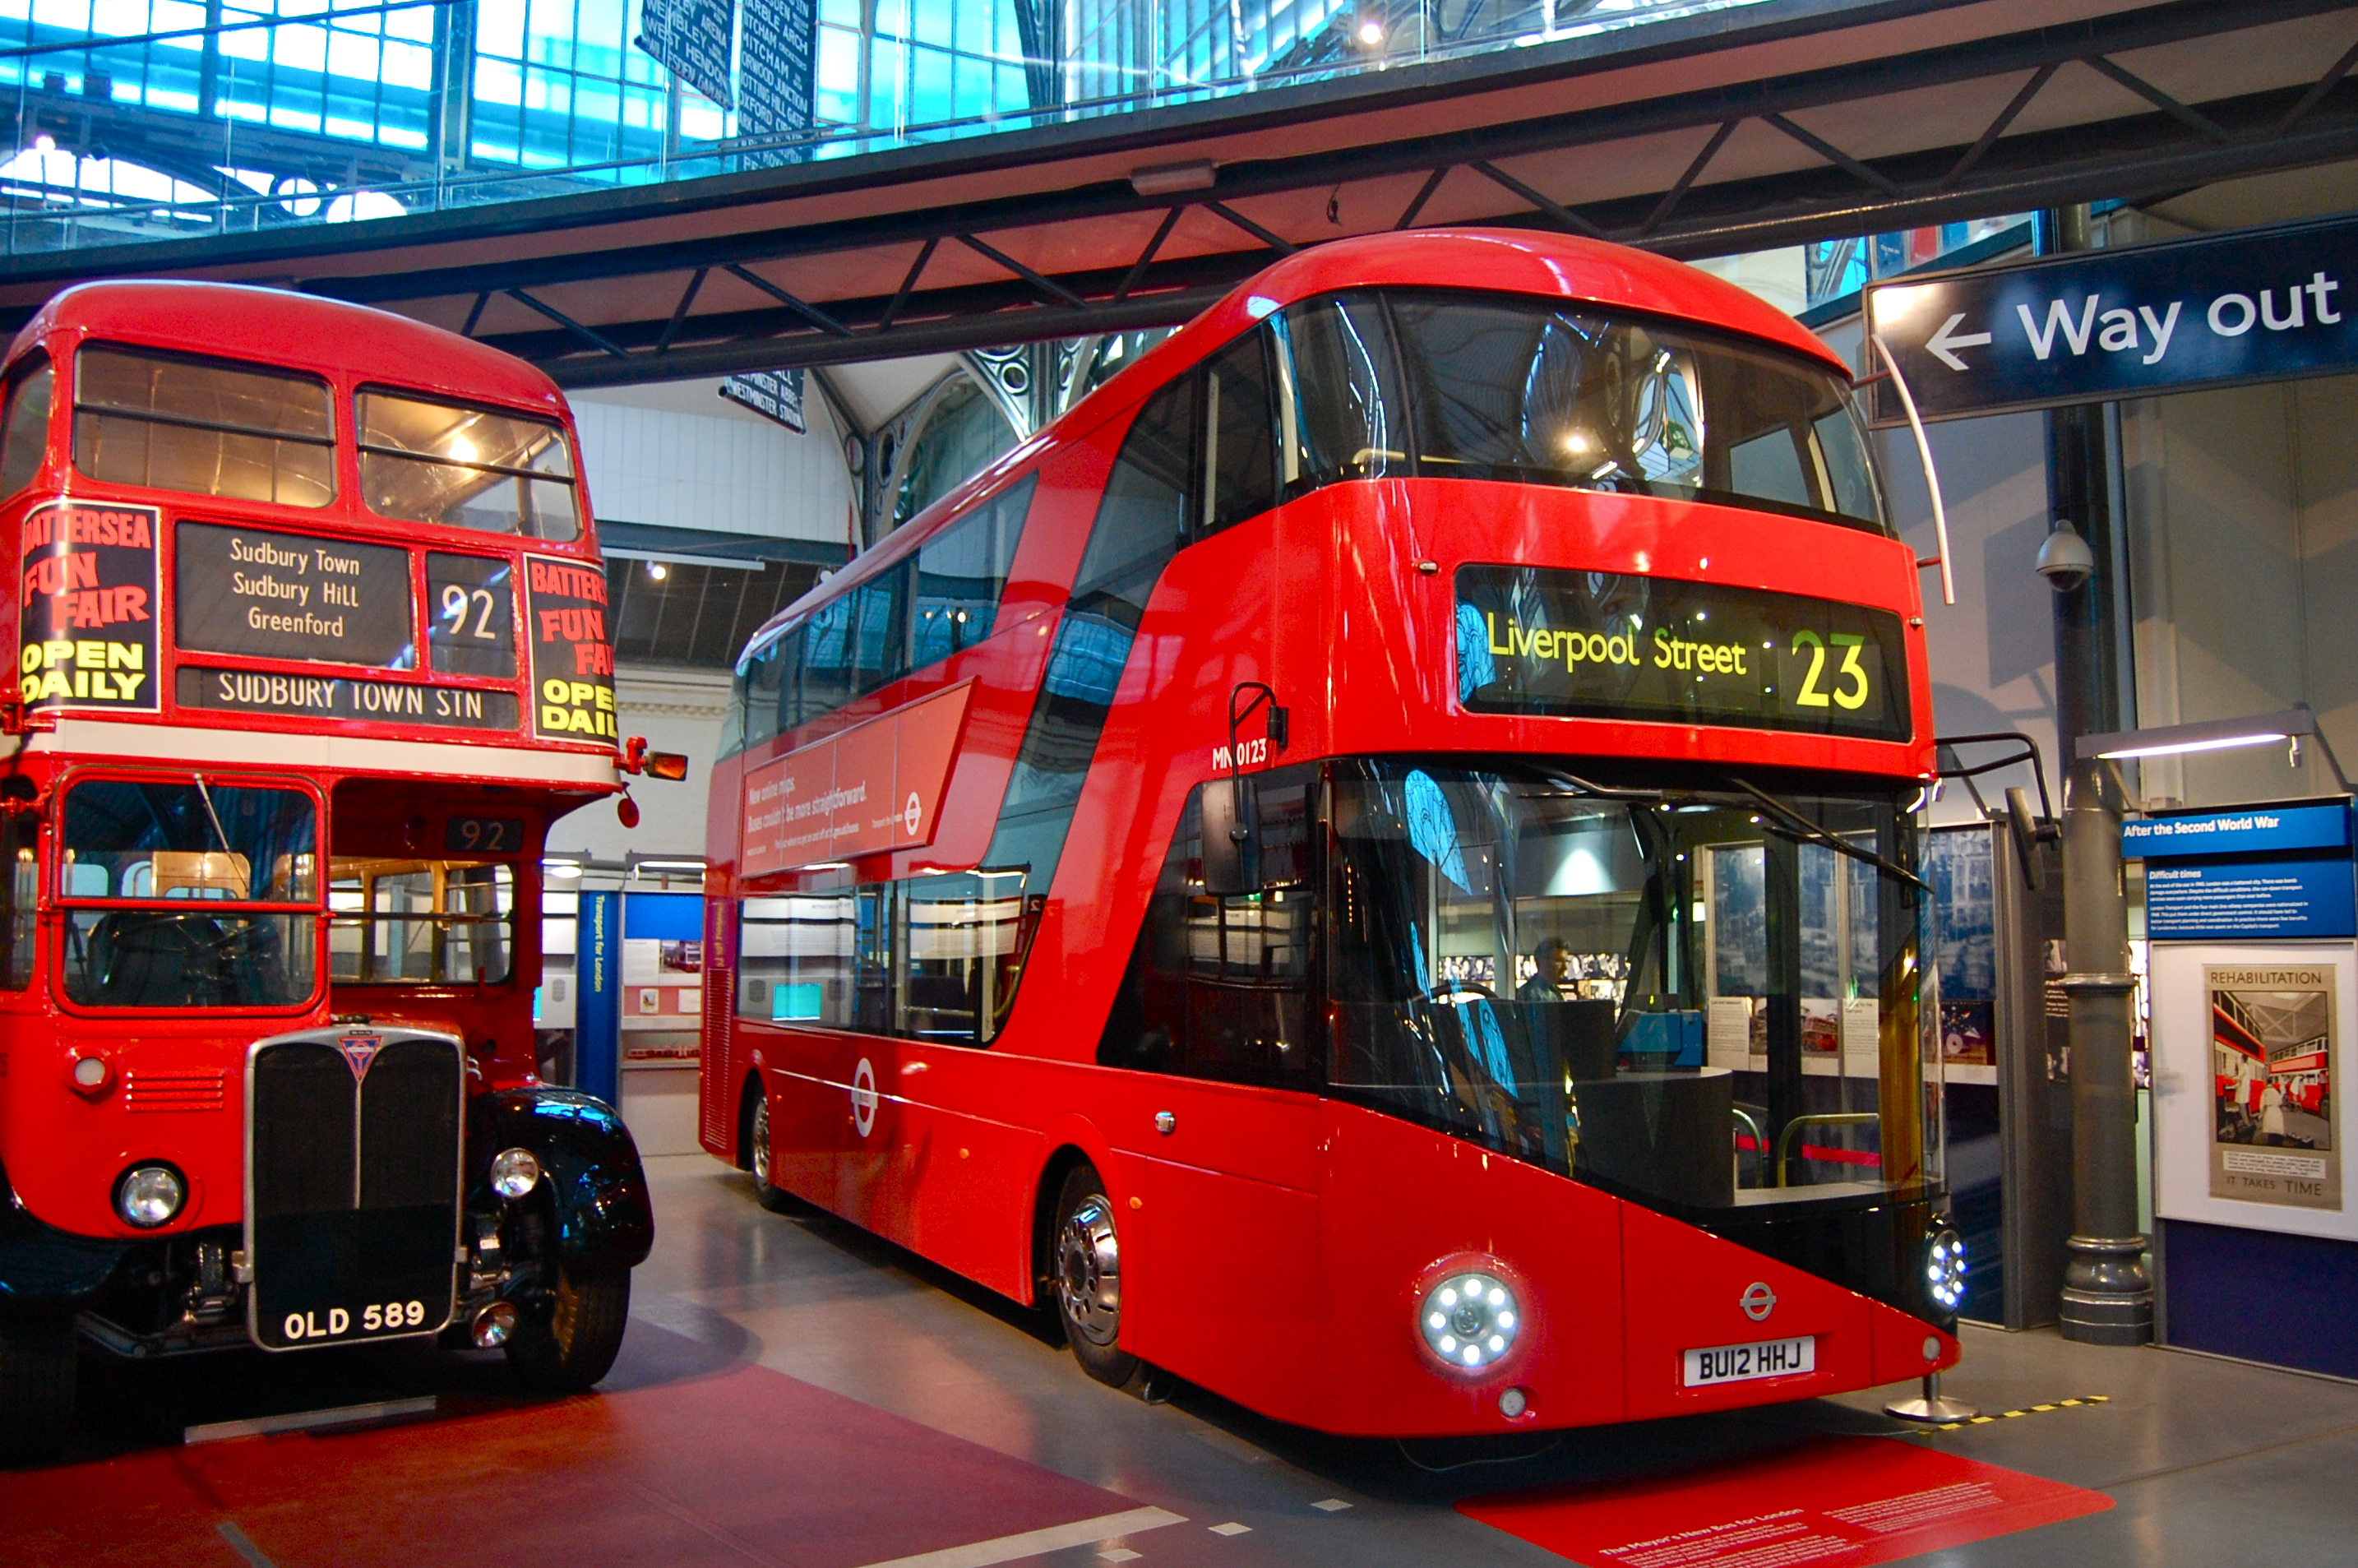 transportation in london London pass free entry to top london attractions including tower of london, st paul's cathedral, windsor castle, london zoo, london dungeons, theatre, open-top buses and a lot more.